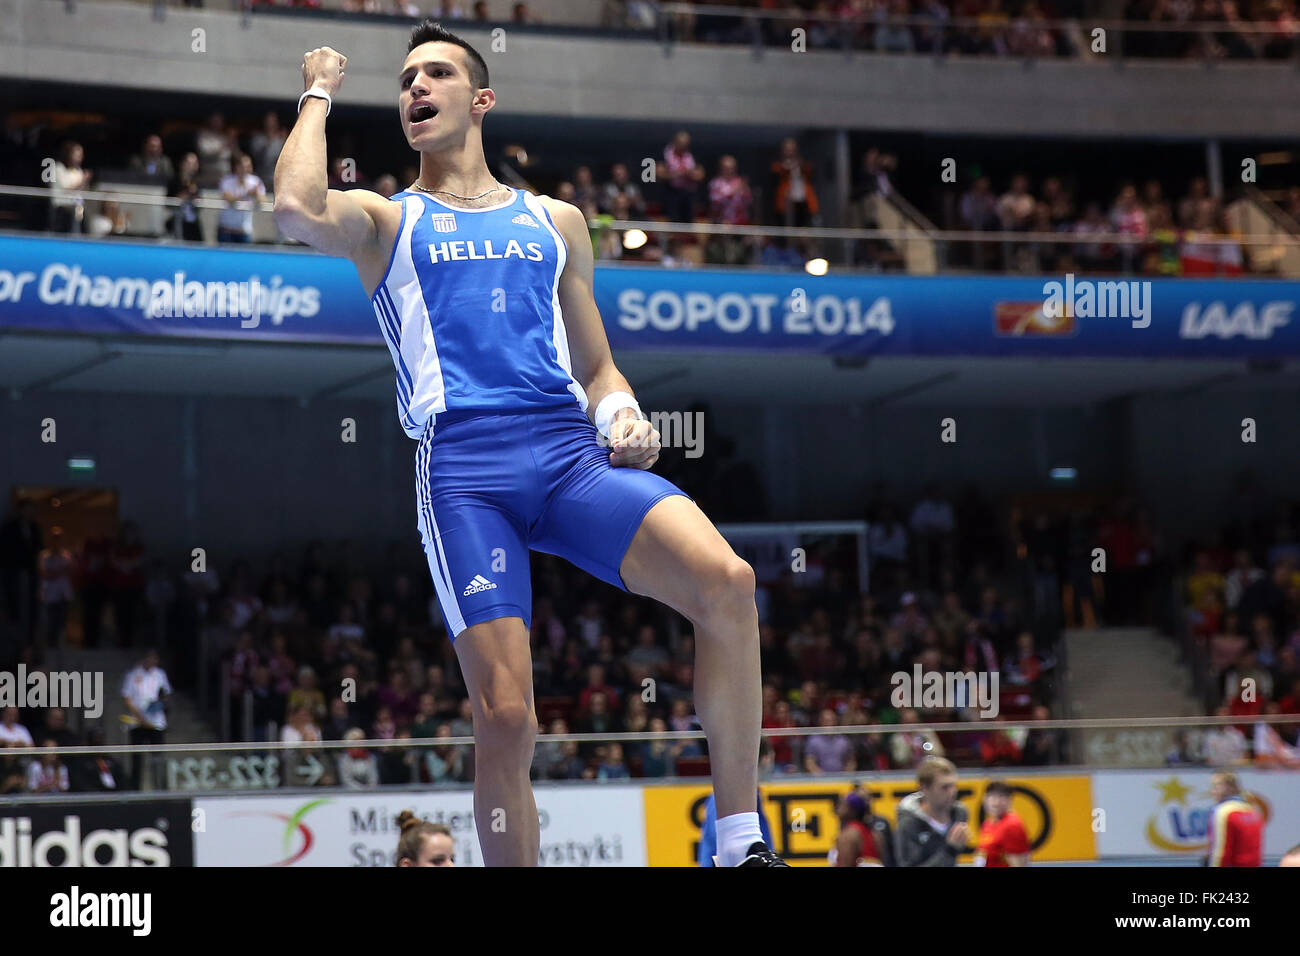 SOPOT, POLAND - MARCH 08:  Kostadinos Filippidis during day two of the IAAF World Indoor Championships at Ergo Arena. - Stock Image